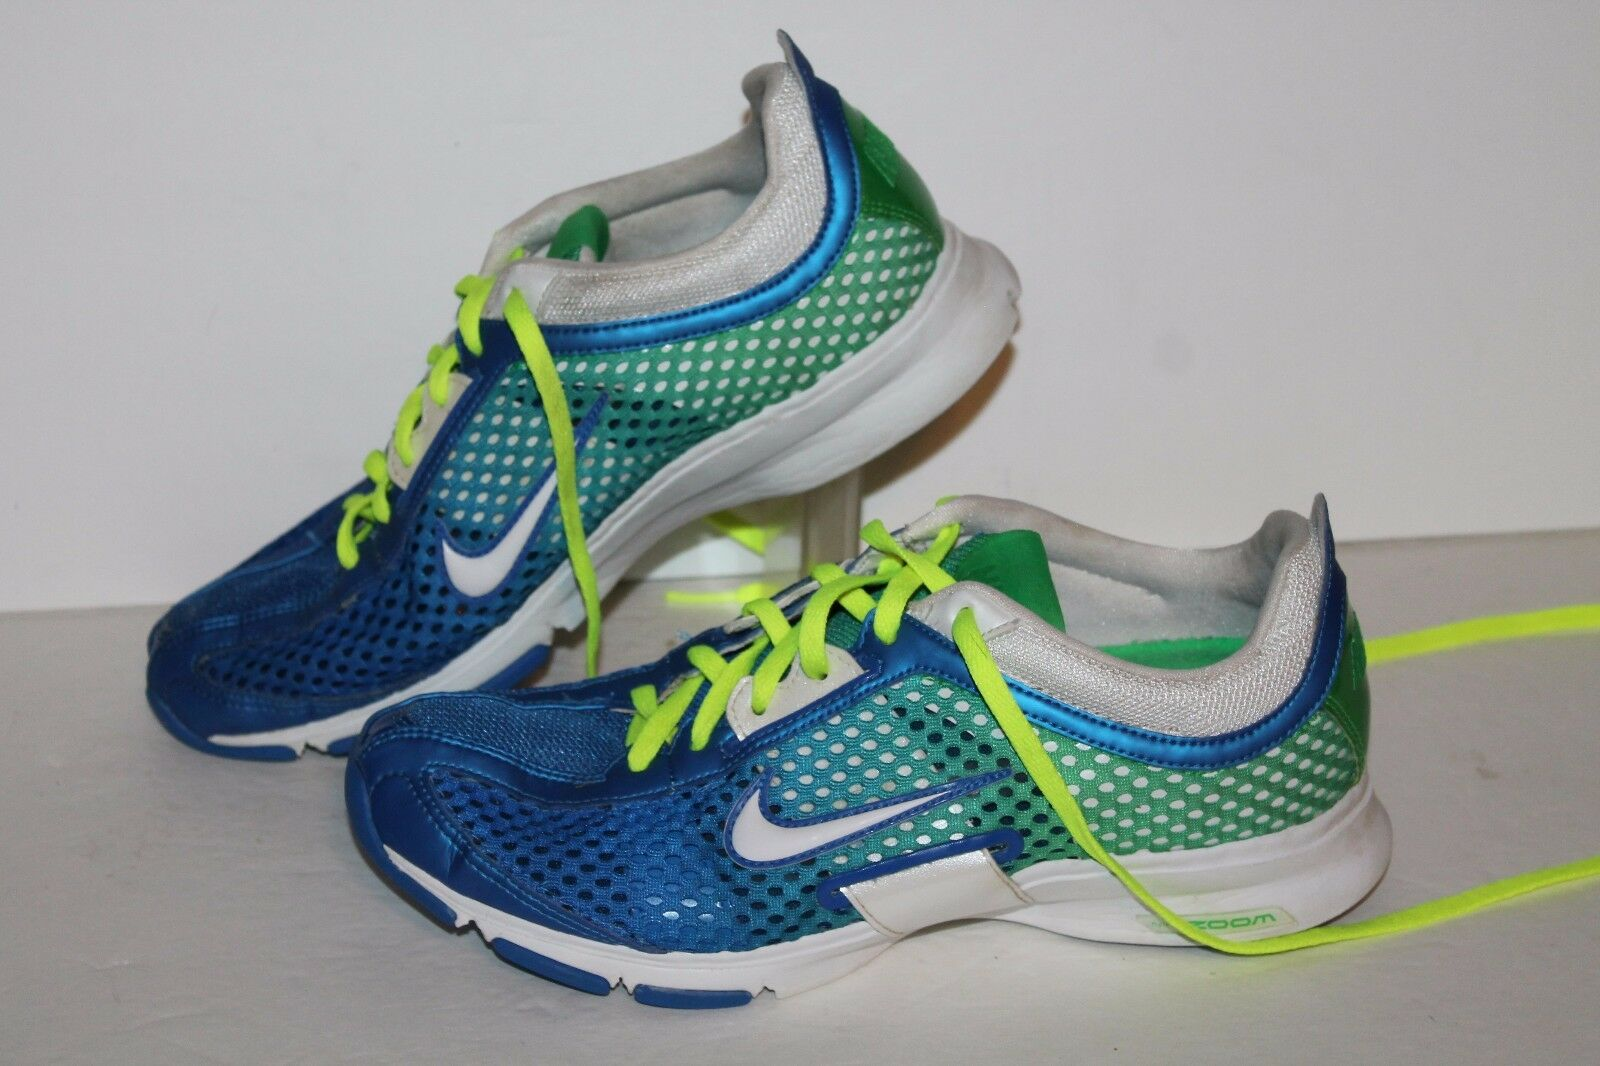 Nike Zoom Trainer Essential Running Shoes, Royal/Green, Womens US 7 Cheap women's shoes women's shoes